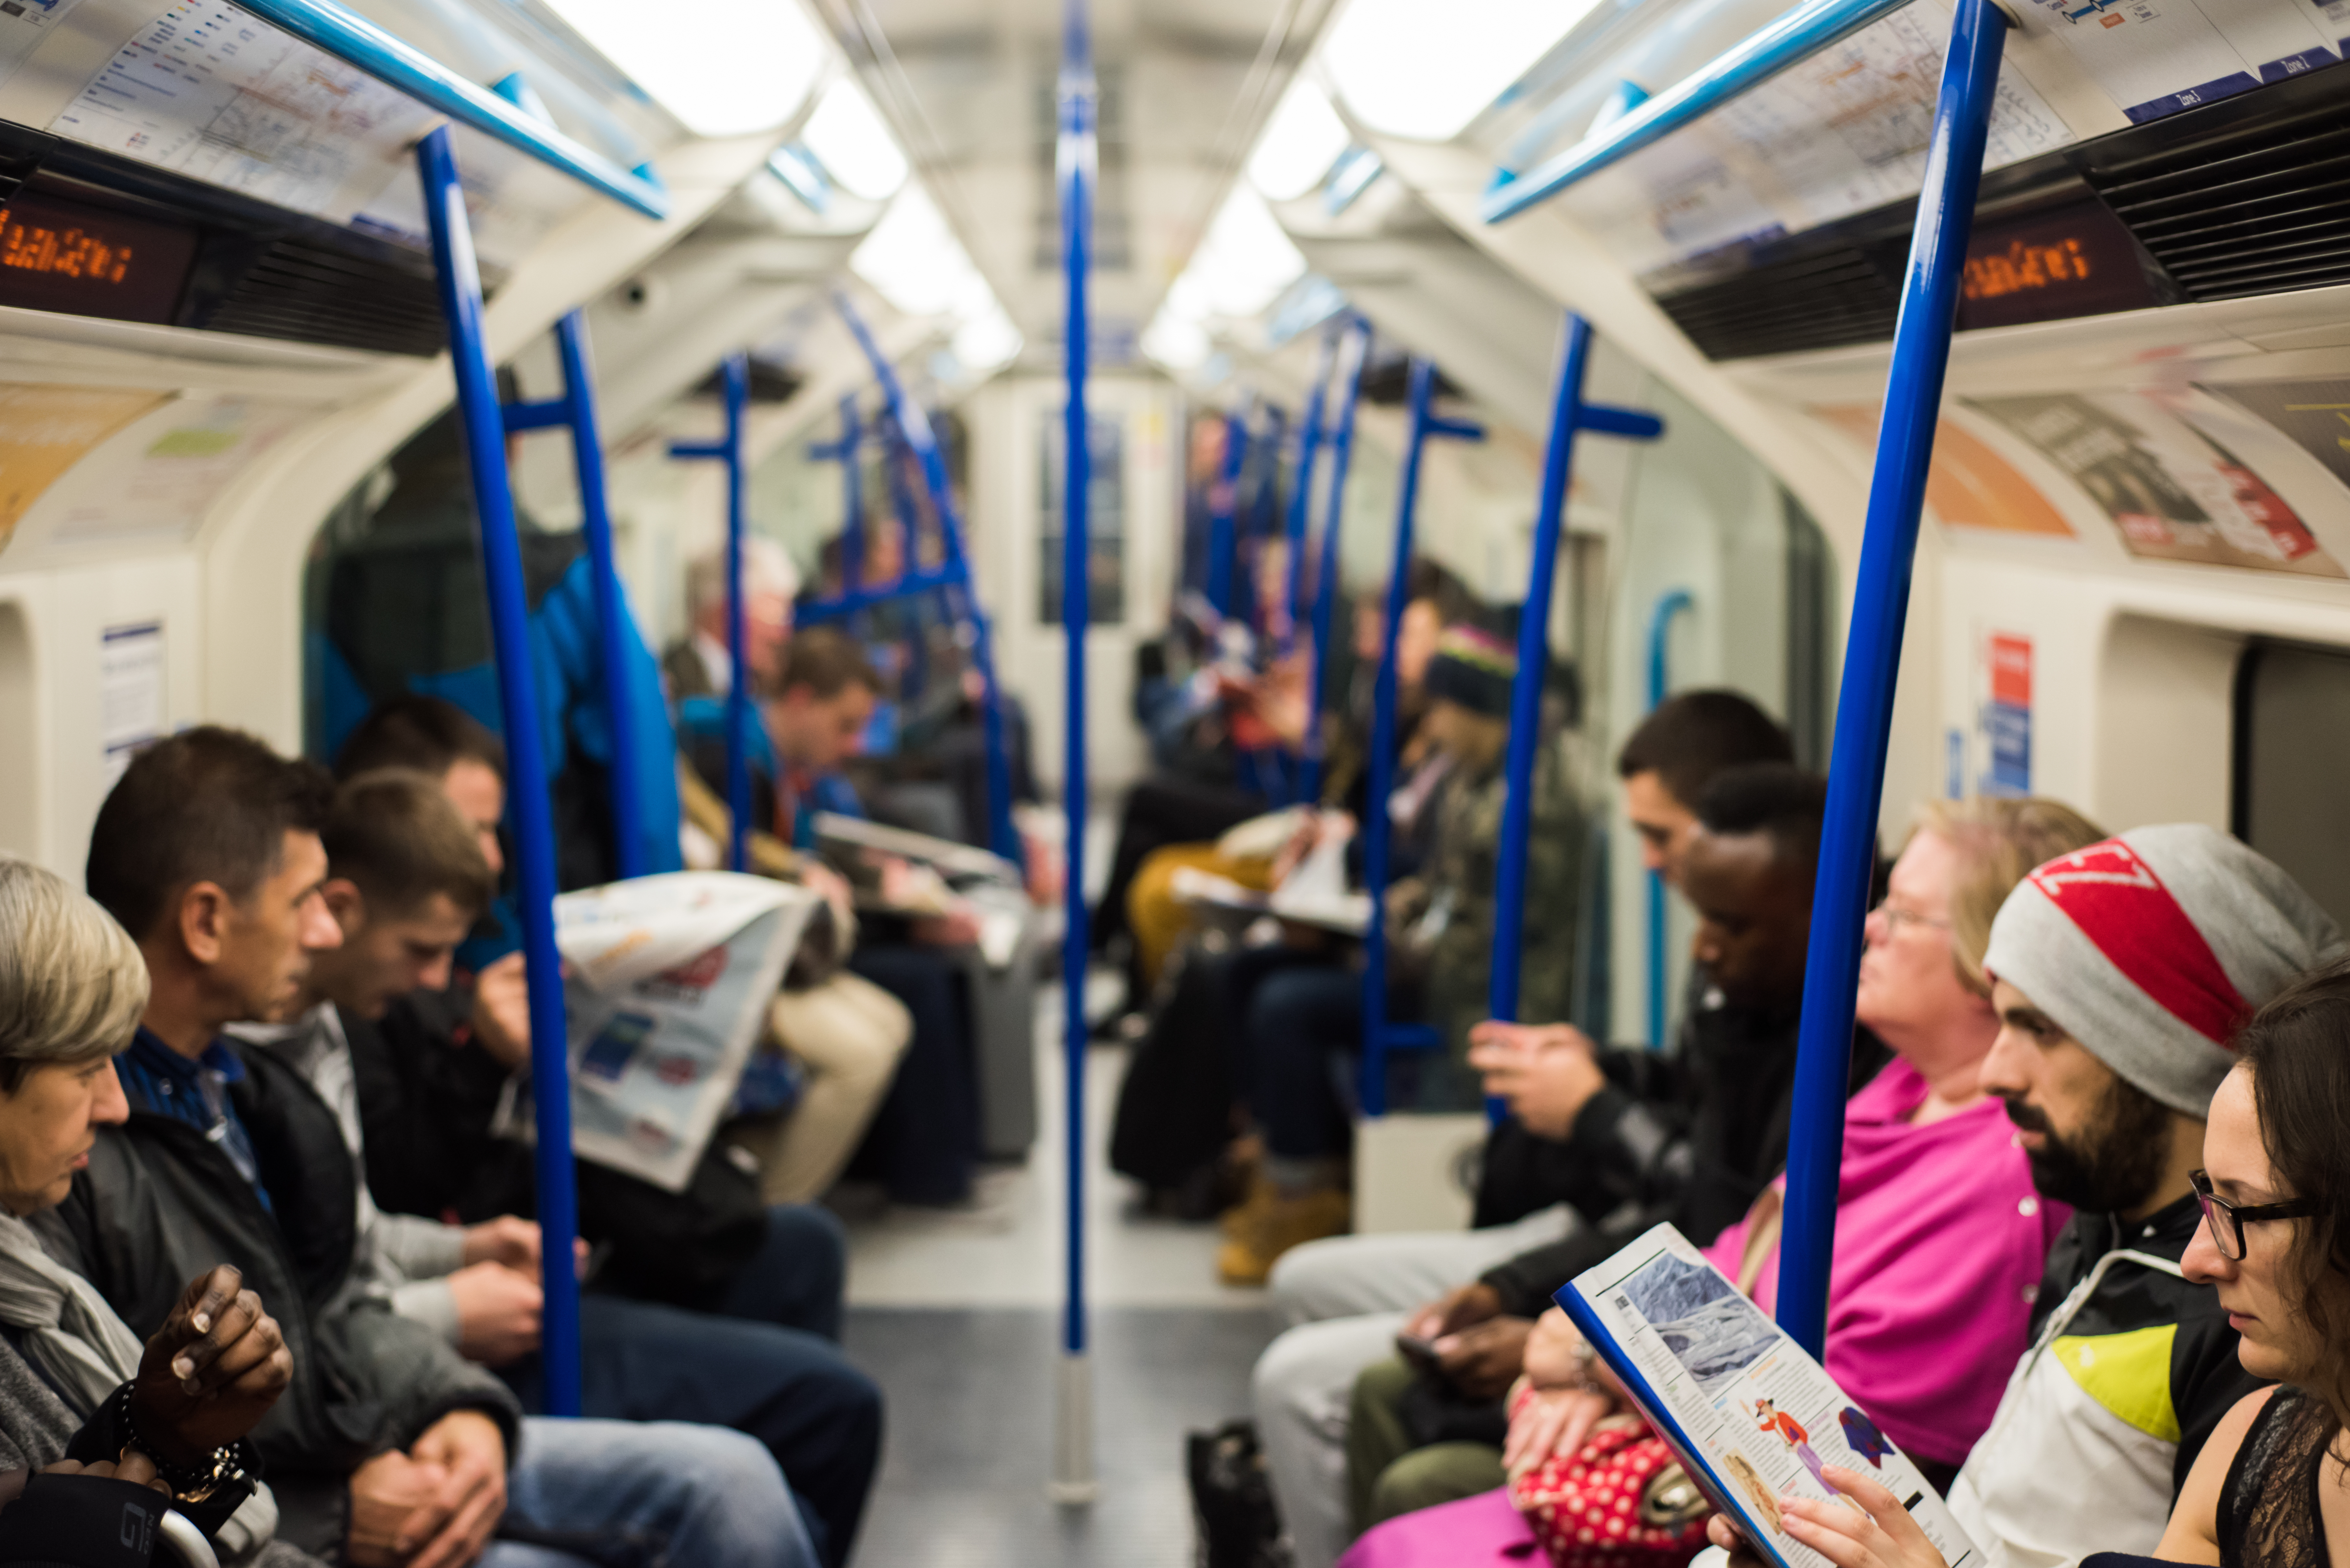 The London Tube strike 'brought economic benefits for workers'